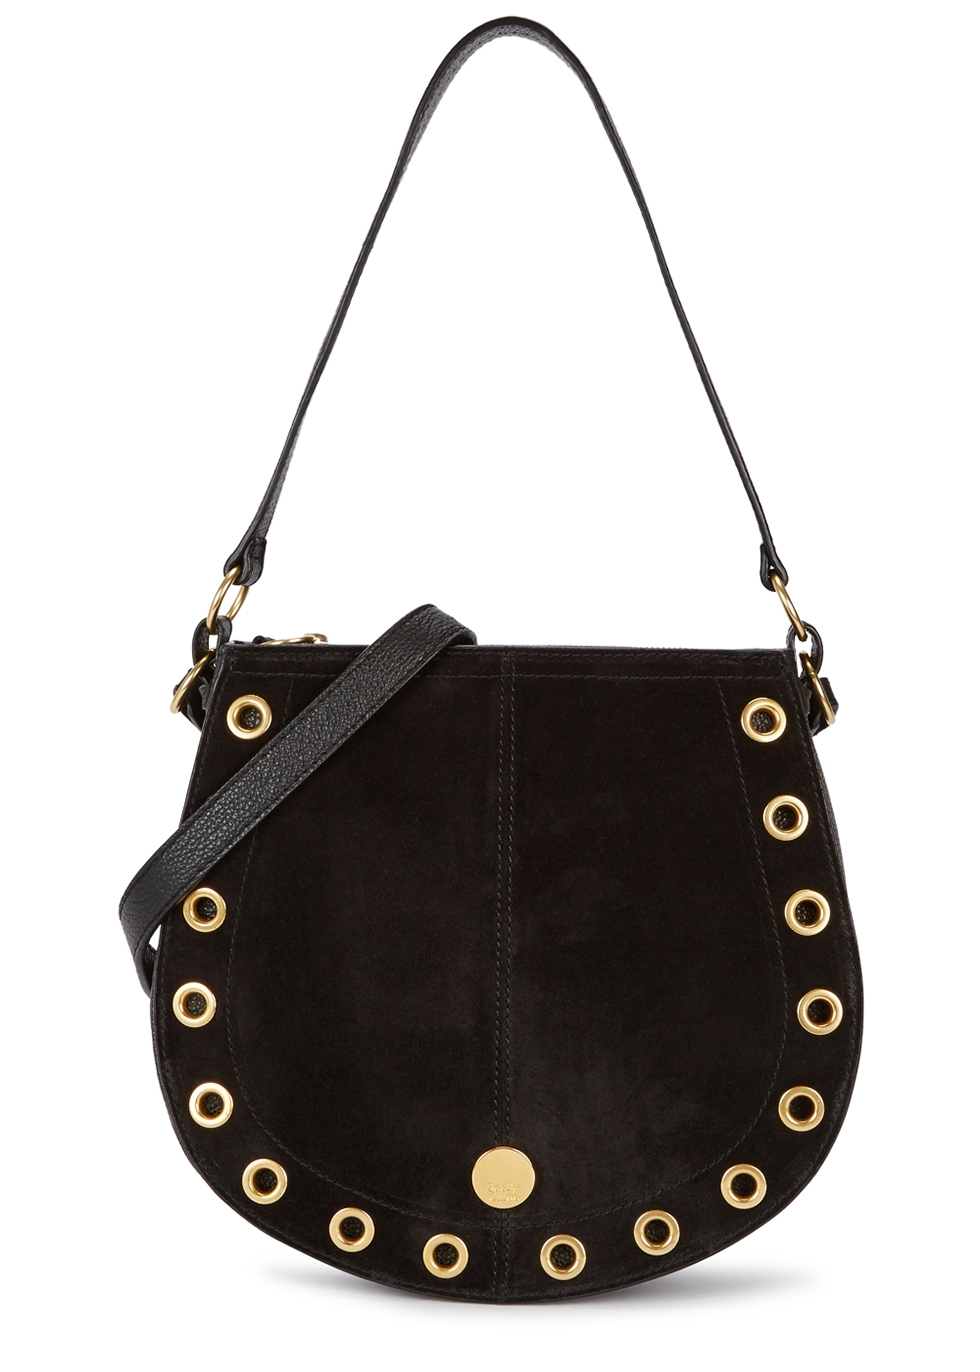 SEE BY CHLOÉ KRISS LARGE LEATHER HOBO BAG